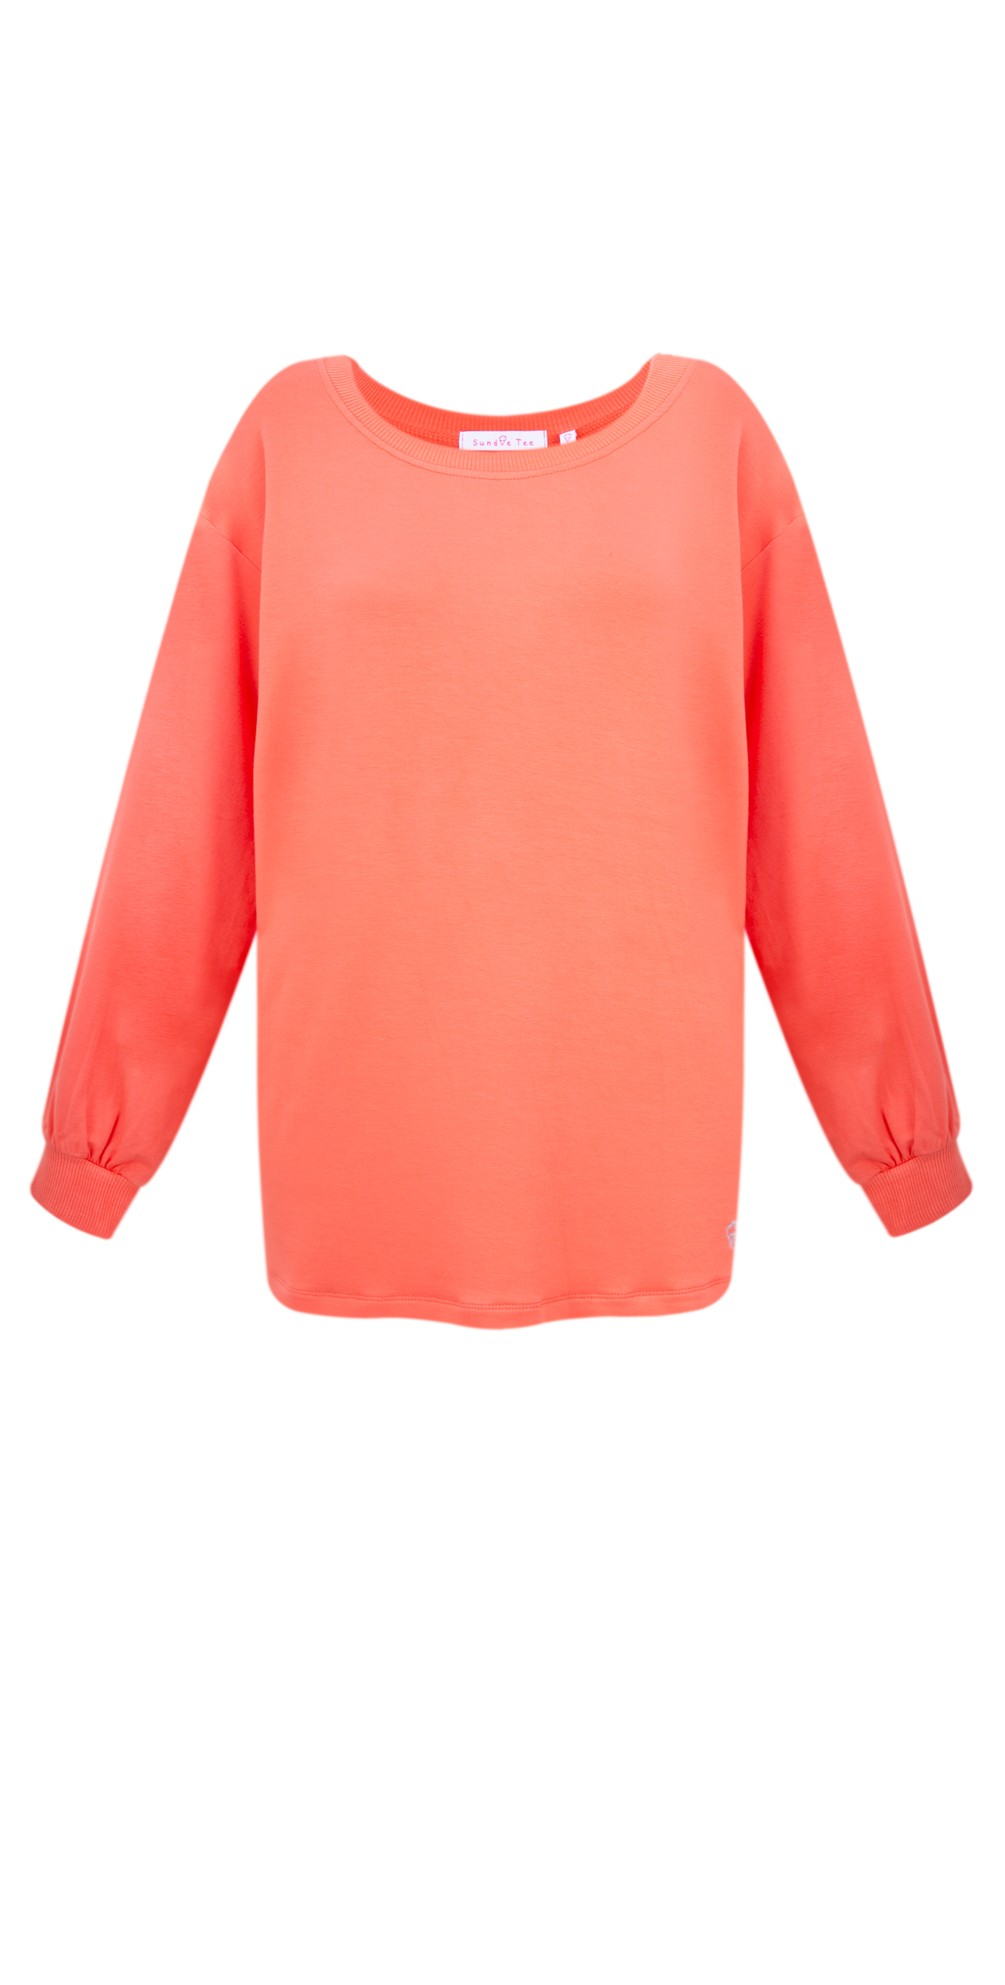 Mila Long Sleeve Top main image